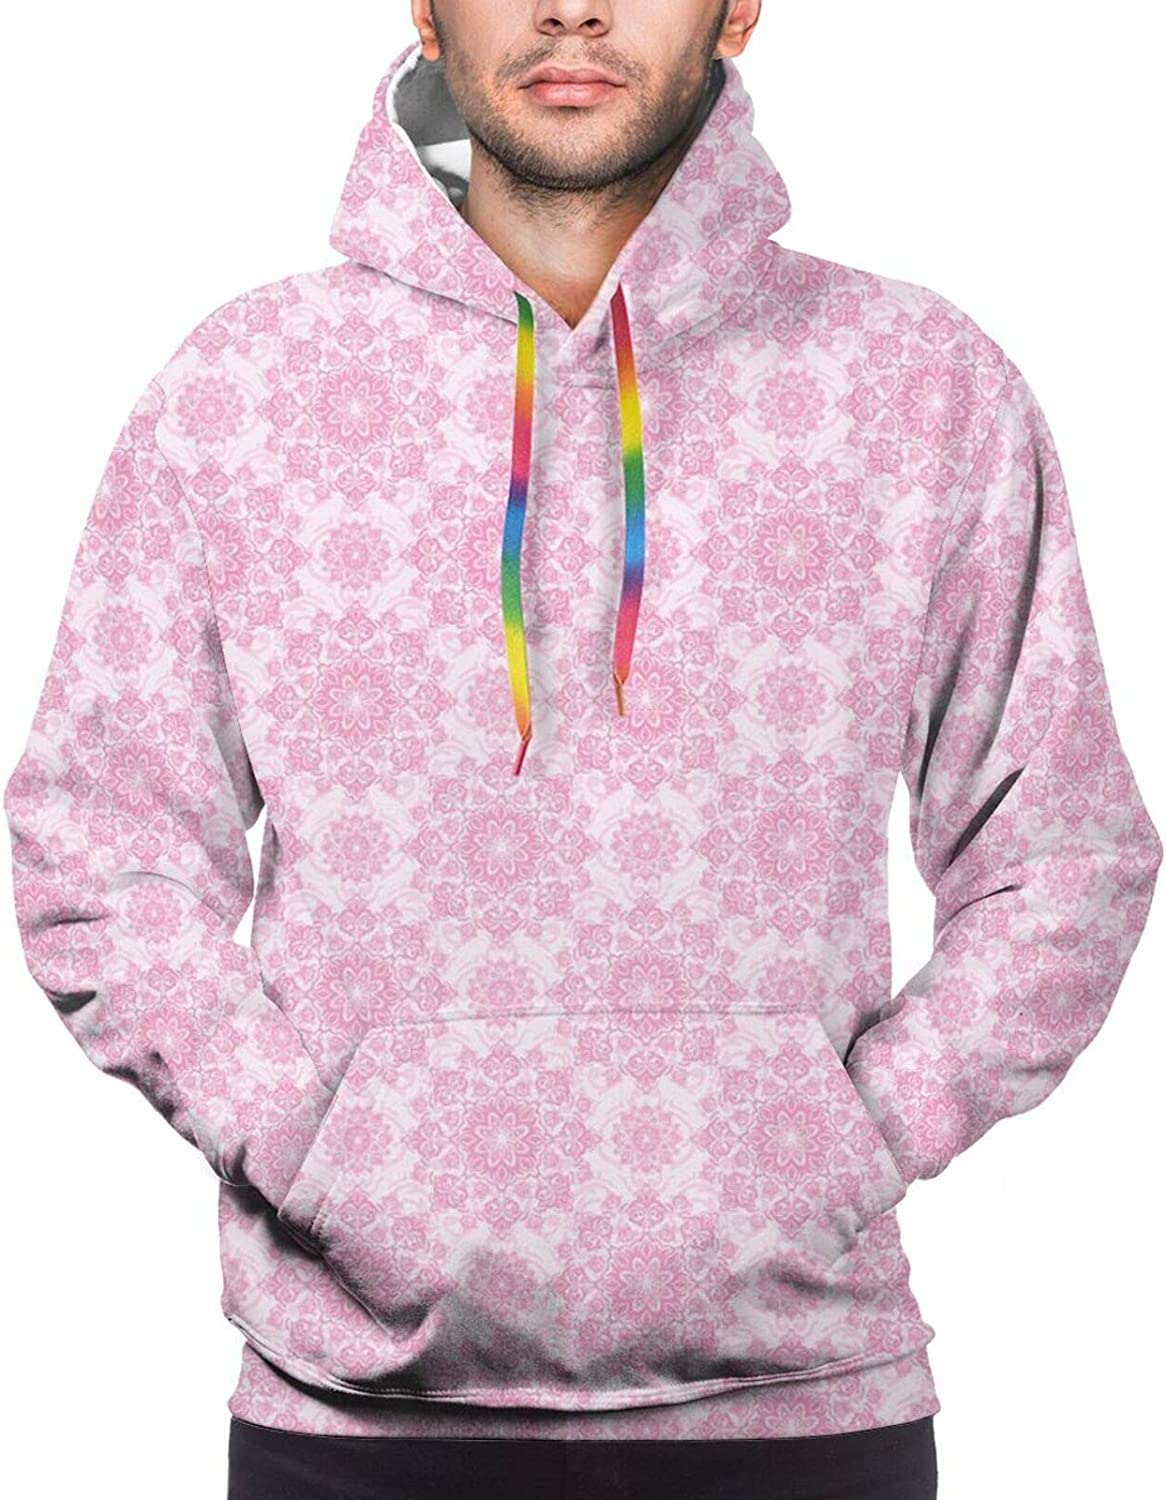 TENJONE Men's Hoodies Sweatshirts,Modernistic Hatched Shapes Geometrical Pattern Concave Star Like Shape and Square